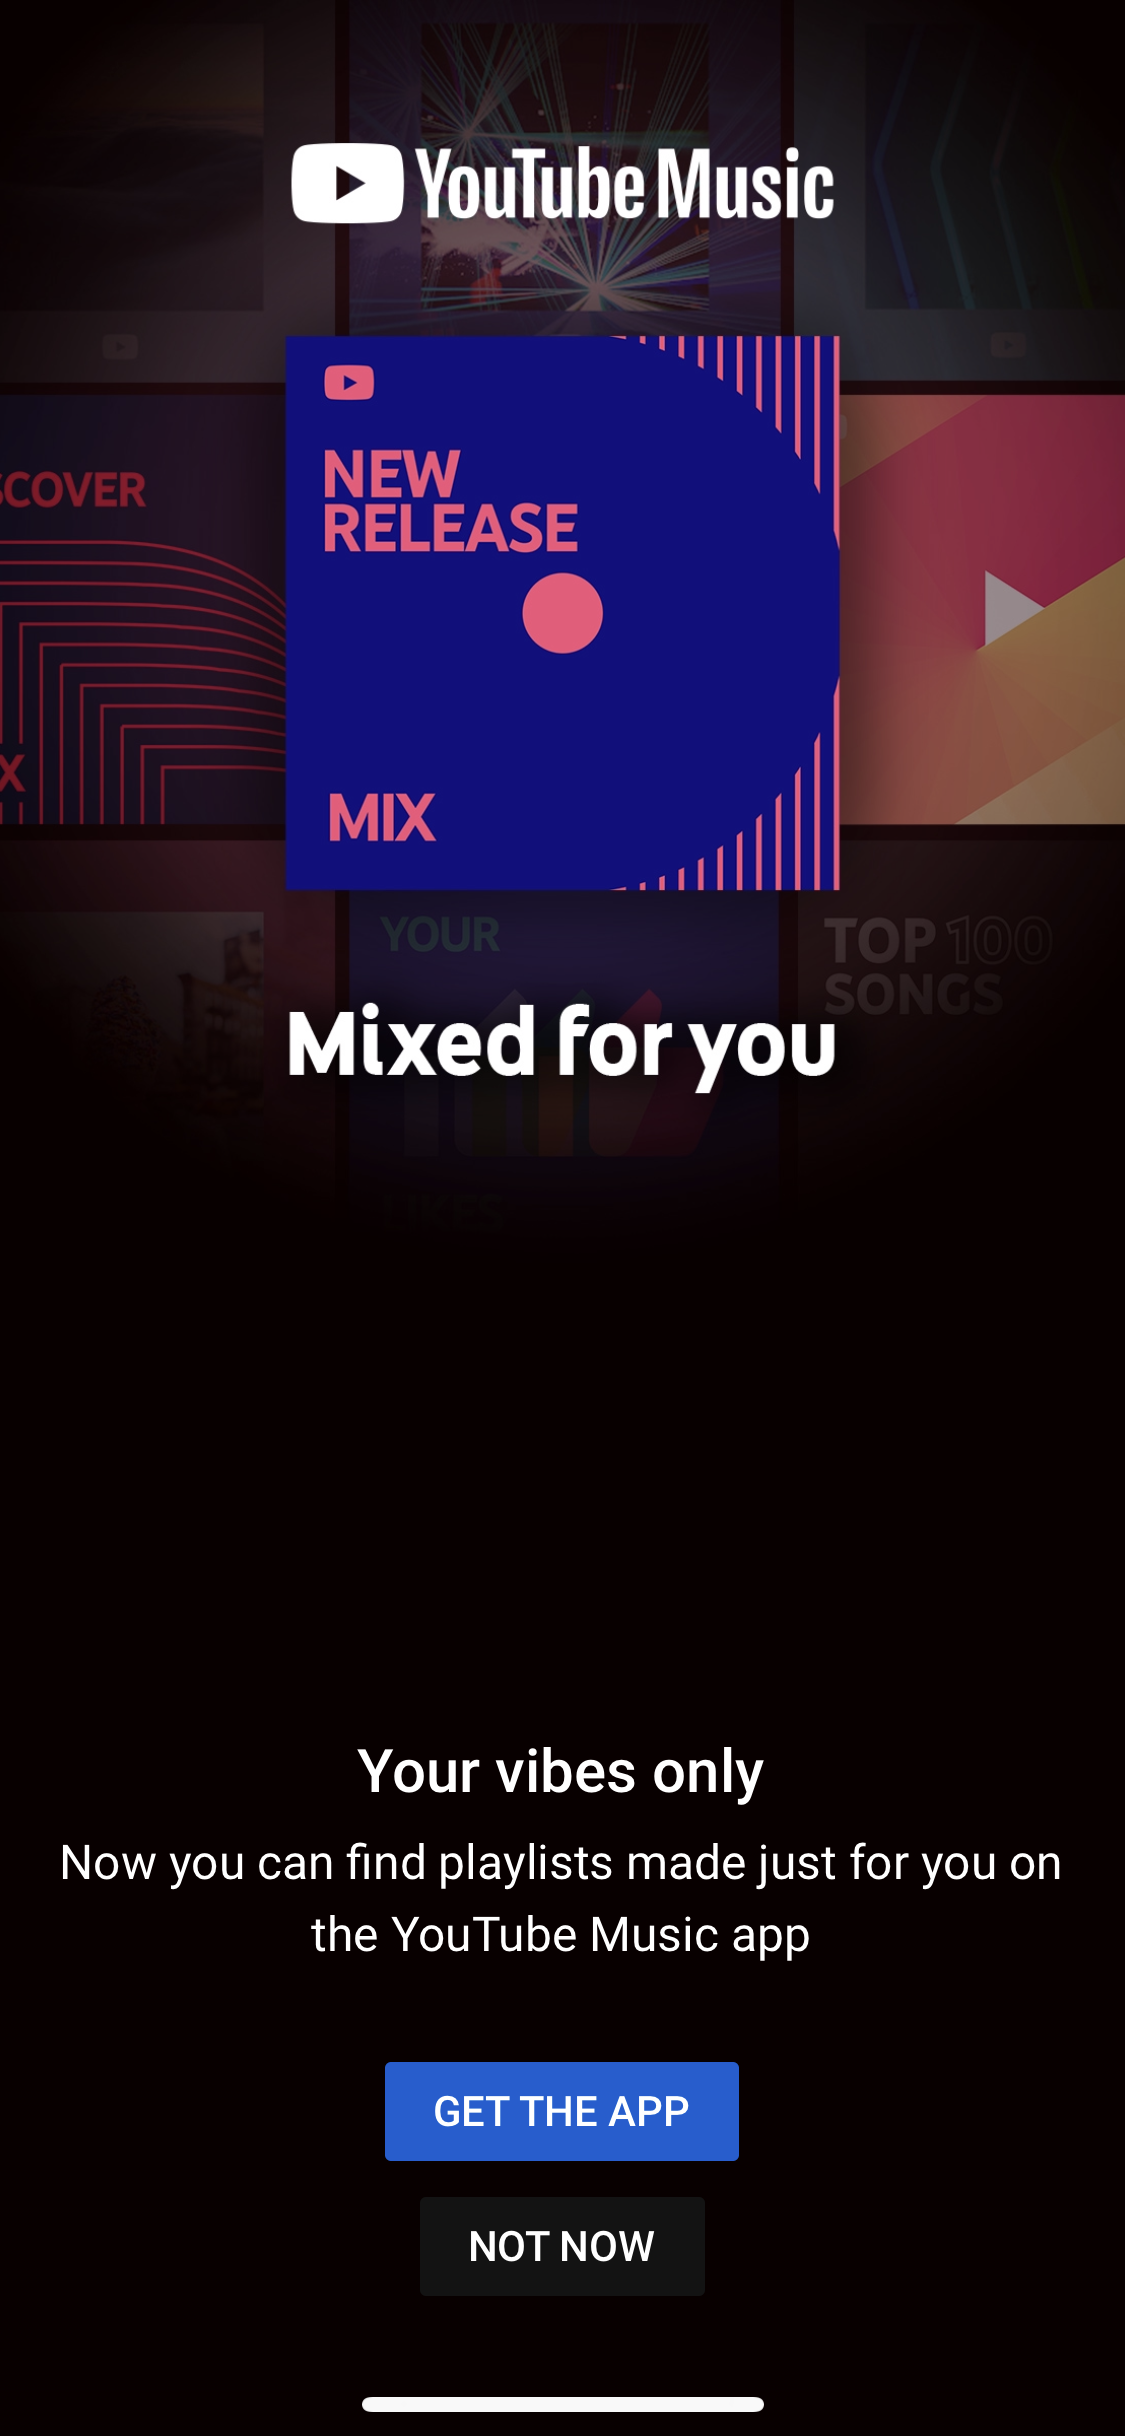 youtube music upgrade prompt ux example